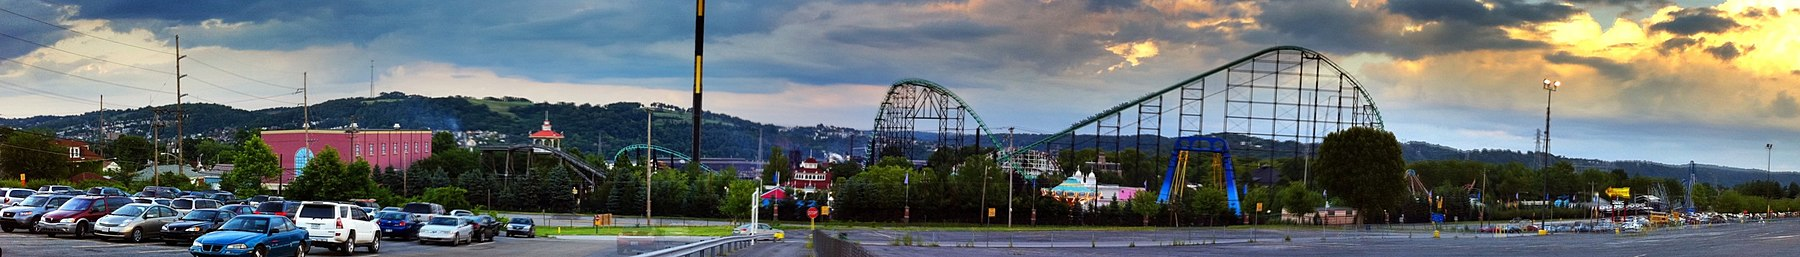 Kennywood panorama by Lan Bui - banner.jpg